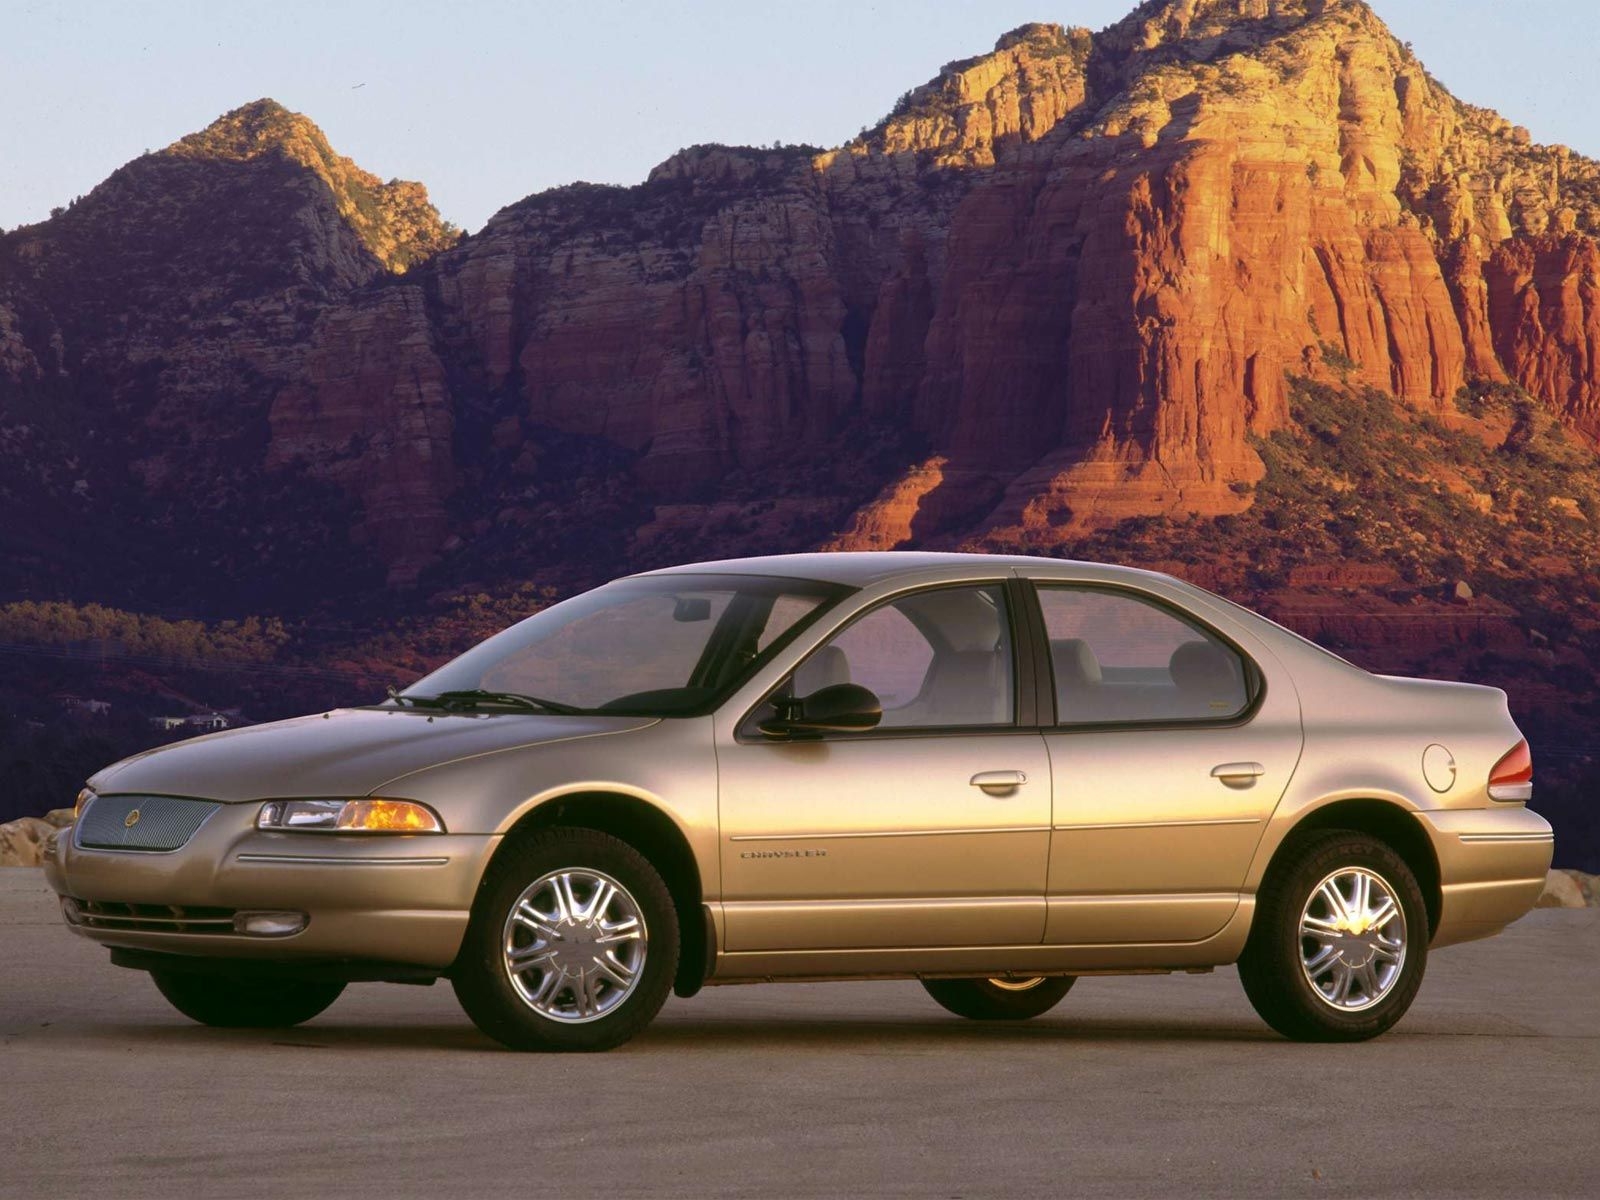 Old Gold, 1999 Chrysler Cirrus, still driving back and